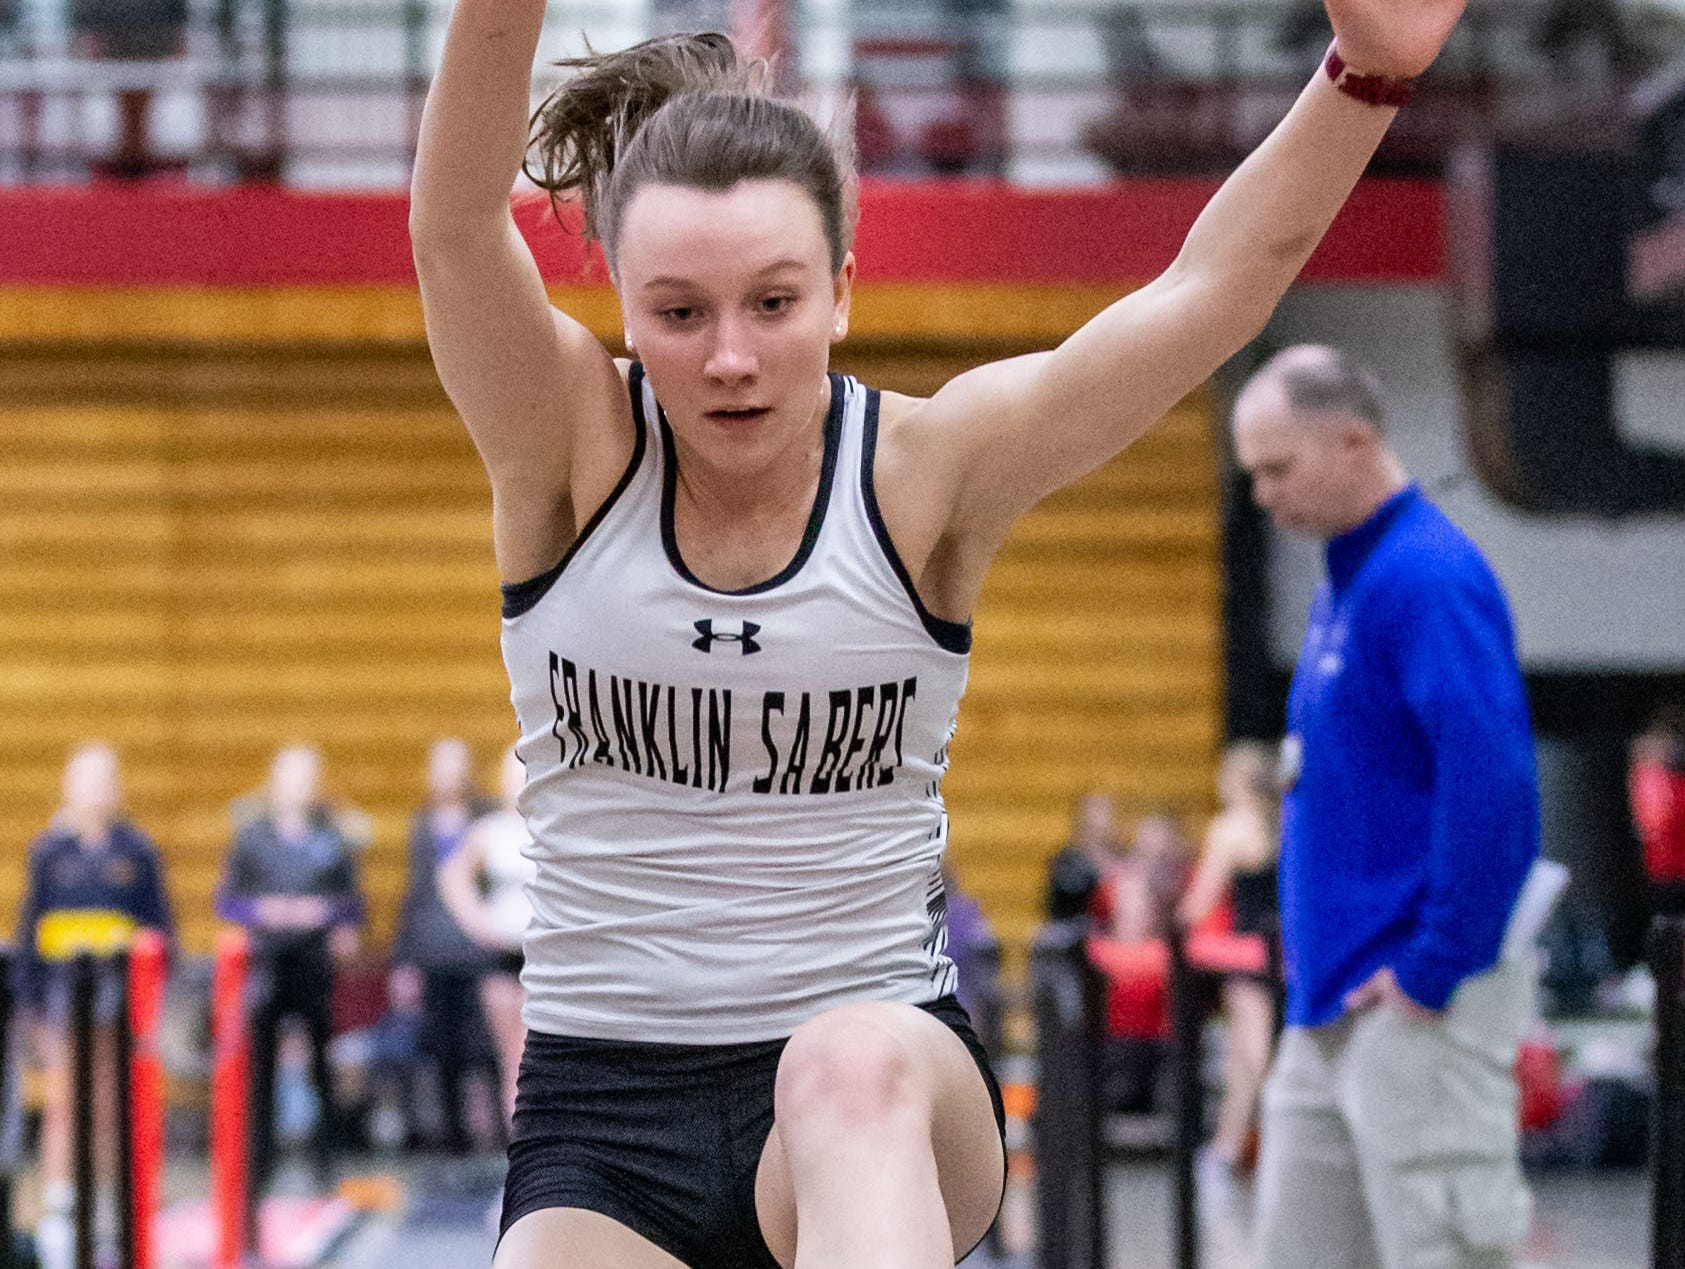 Franklin's Kaitlin Gawelski competes in the triple jump at the Peter Rempe Cardinal Relays hosted by Waukesha South on Thursday, March 21, 2019.